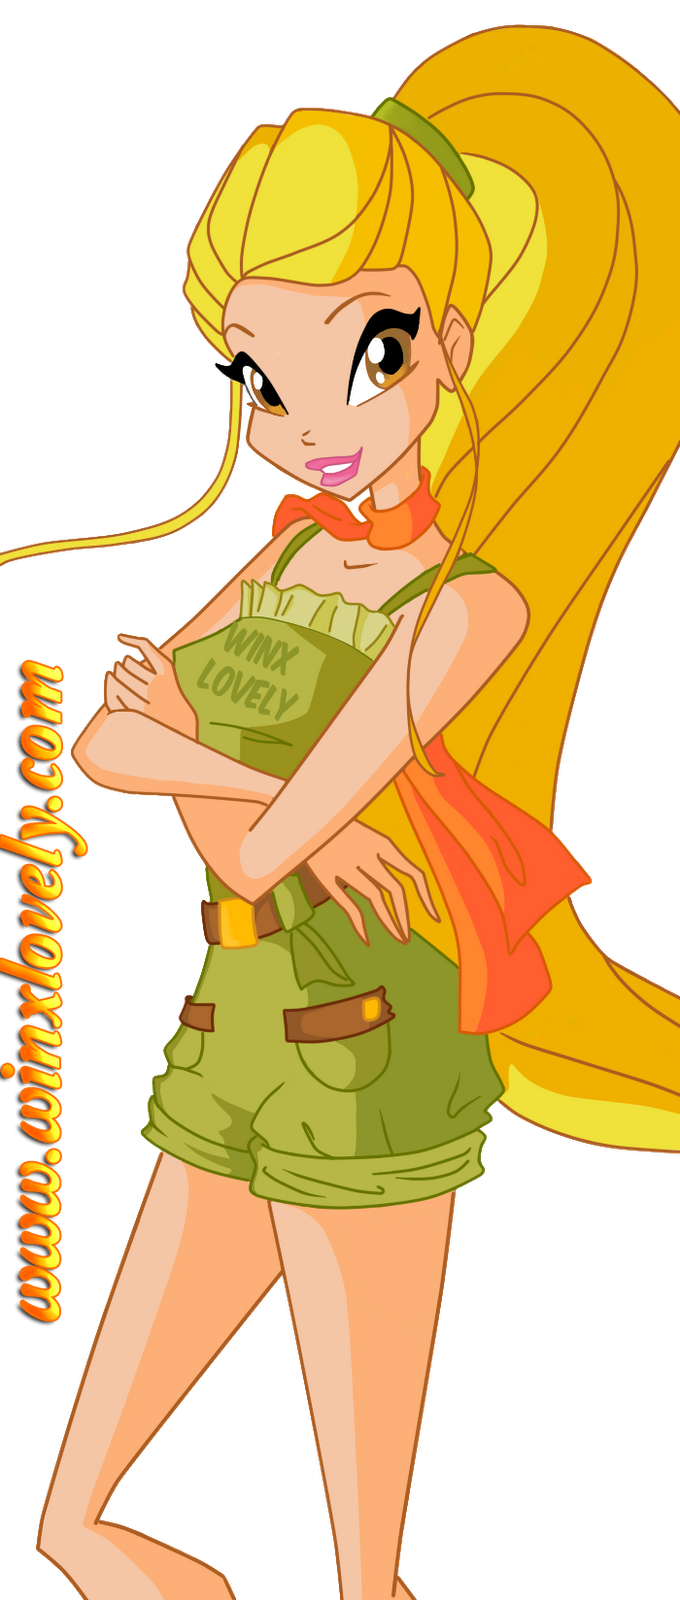 winx stella outfits google search favorite winx outfits pinterest winx club and percy. Black Bedroom Furniture Sets. Home Design Ideas